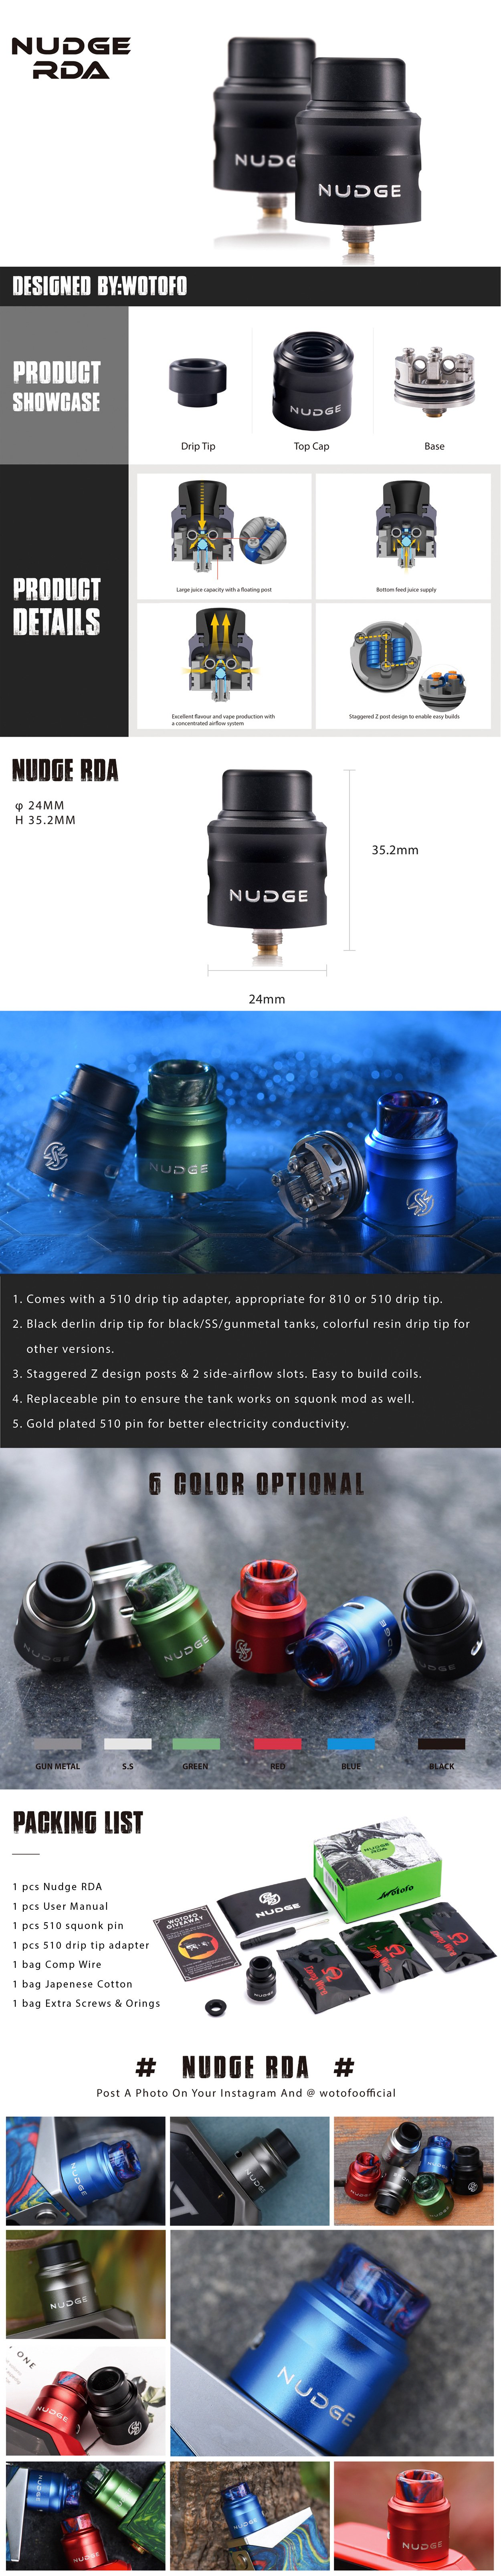 WOTOFO-NUDGE-RDA-24MM.jpg